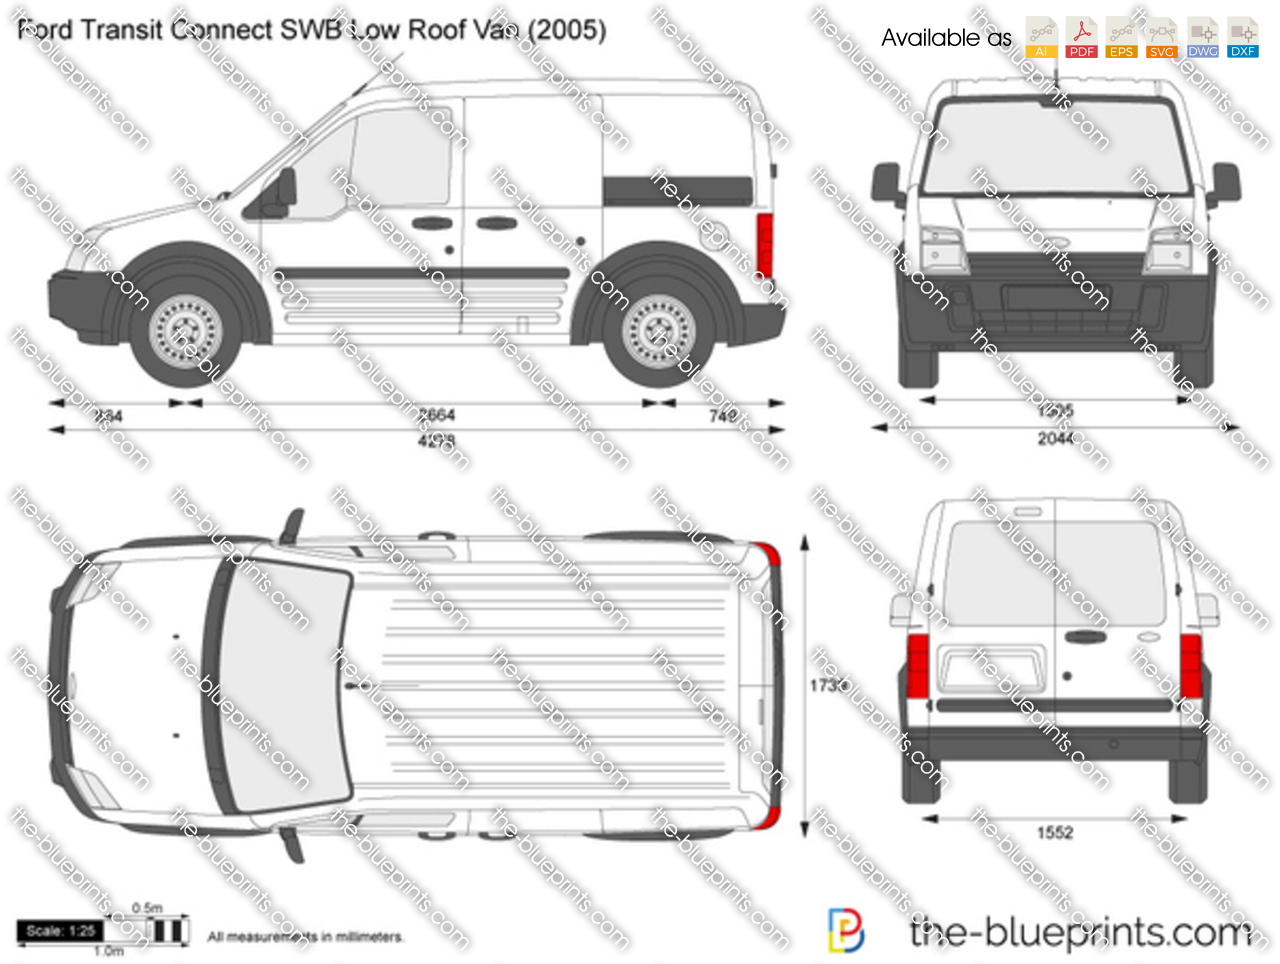 Ford Transit Connect SWB Low Roof Van